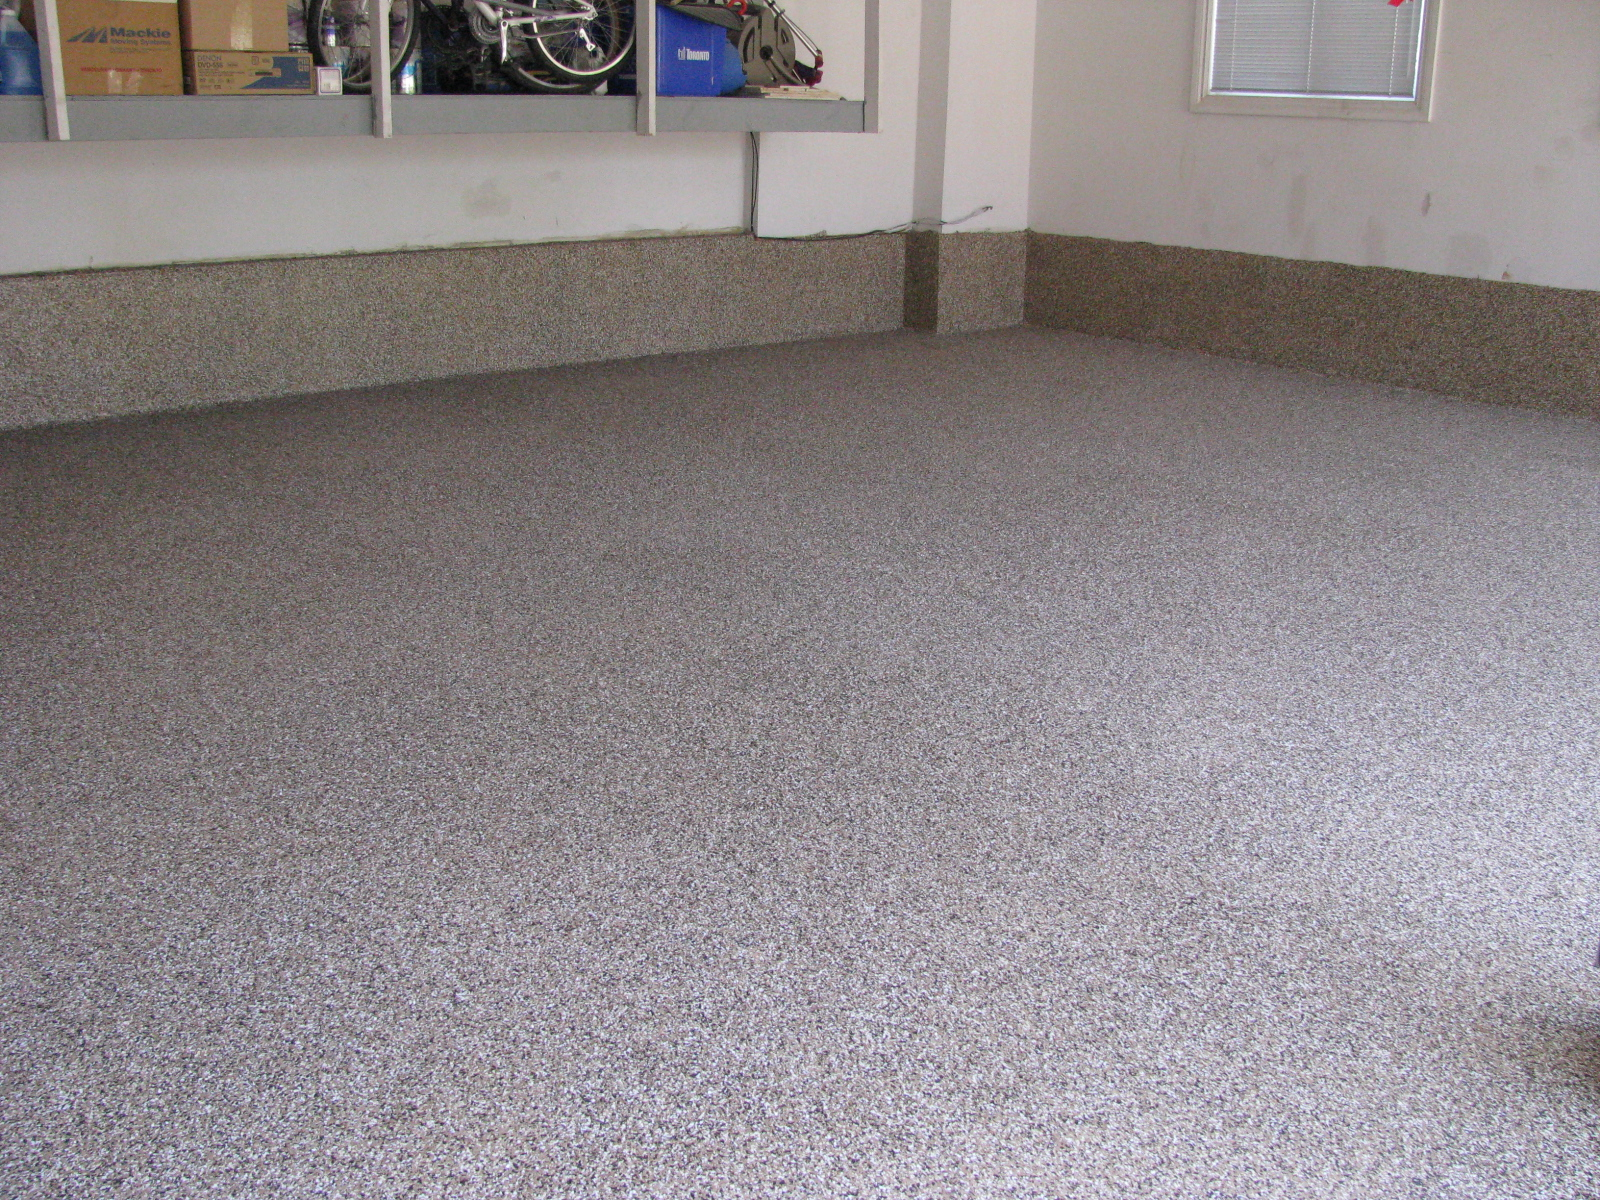 Captivating Garage Floor Finishing ~ Getting It RIGHT The FIRST TIME